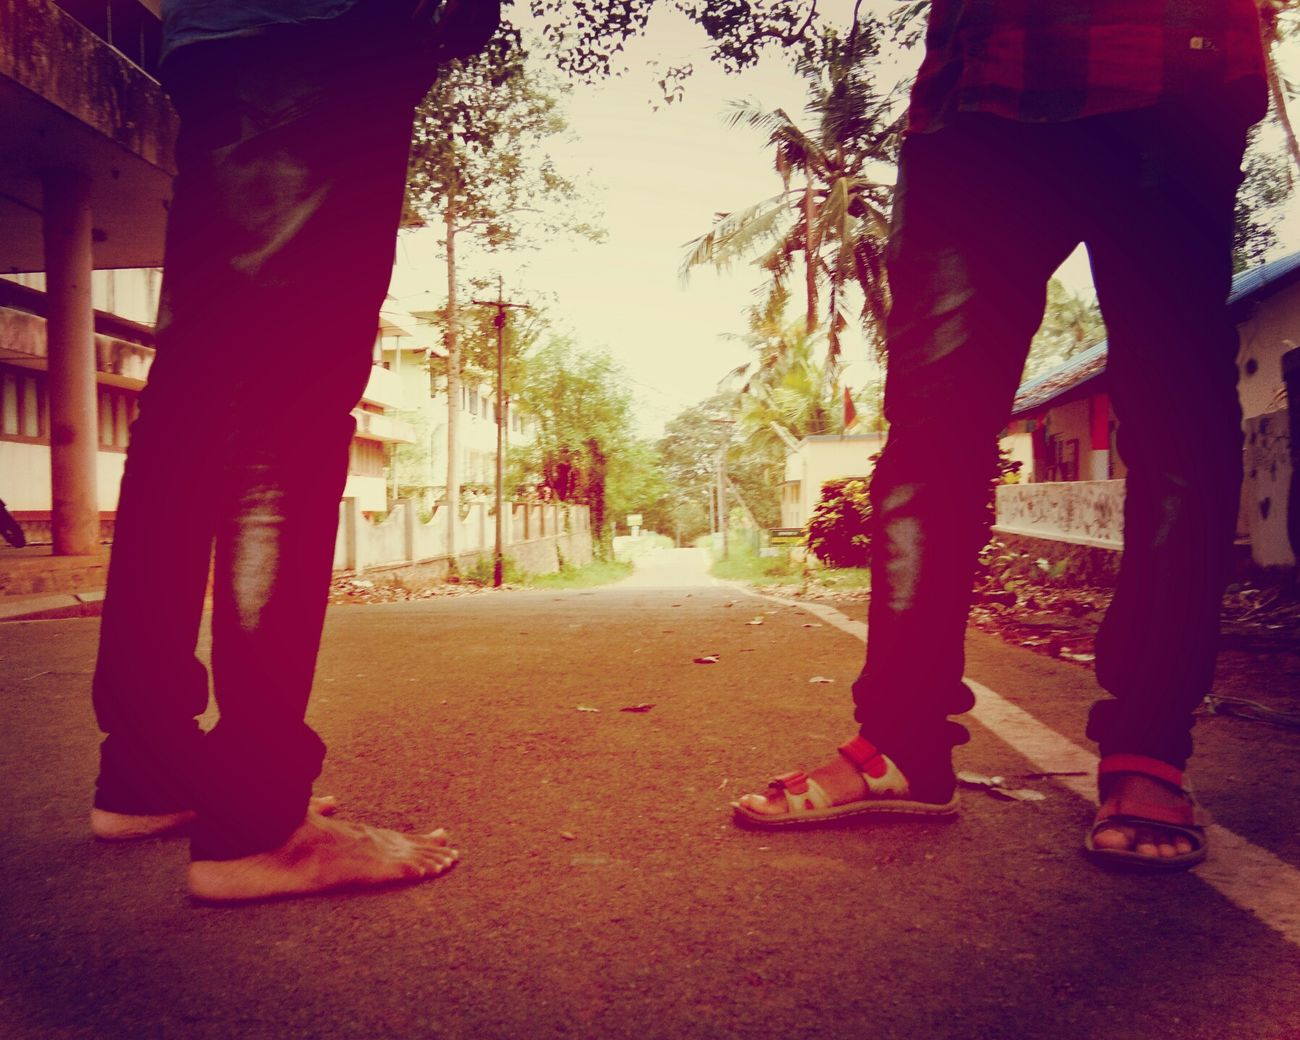 Life Paths People Journey - Evening Human Foot Human Body Part